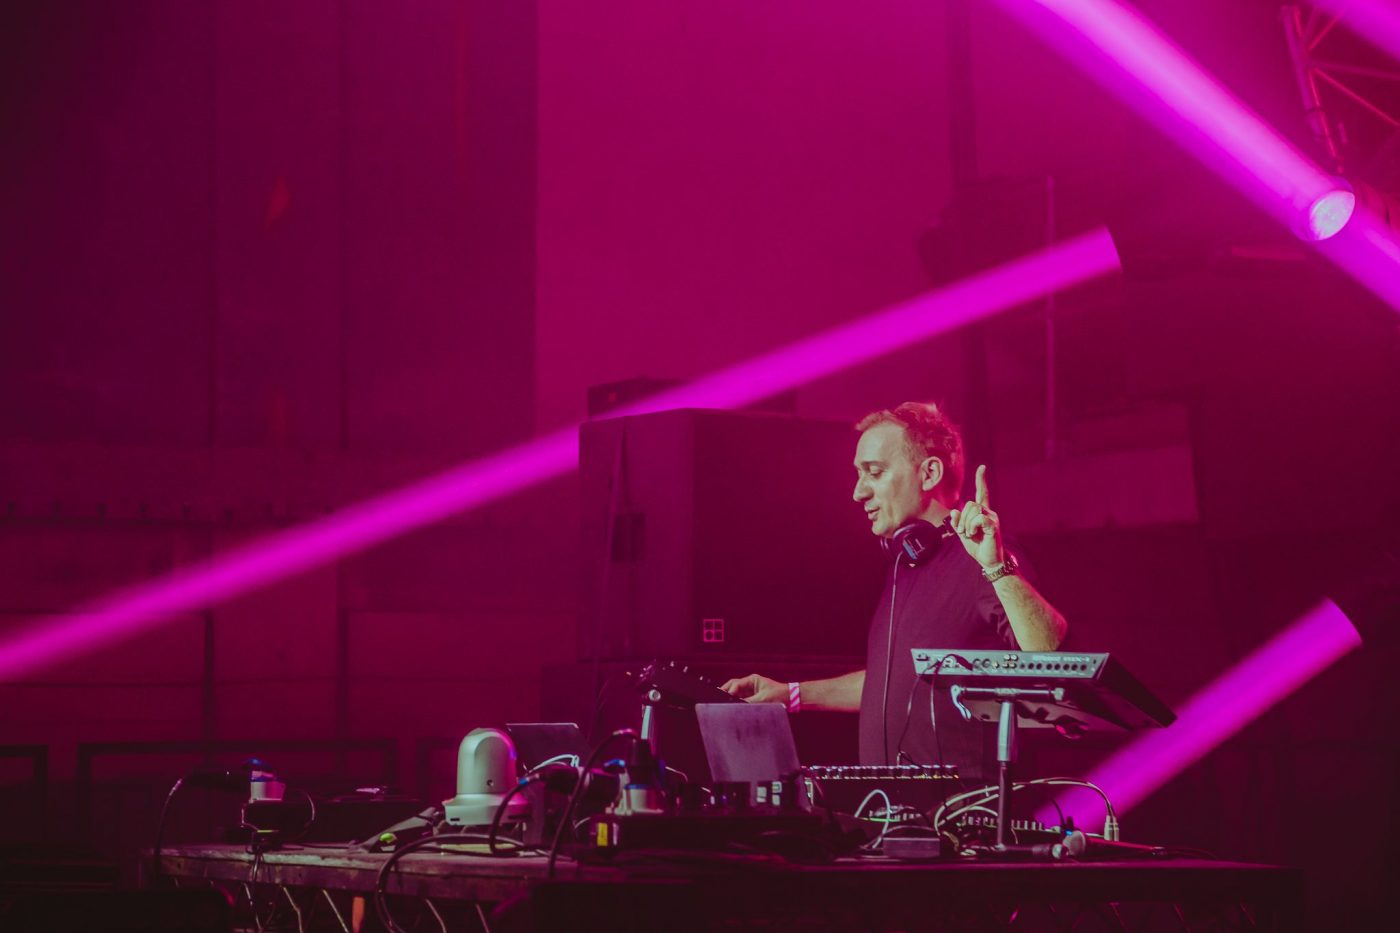 Paul van Dyk decide romper lazos con A State Of Trance